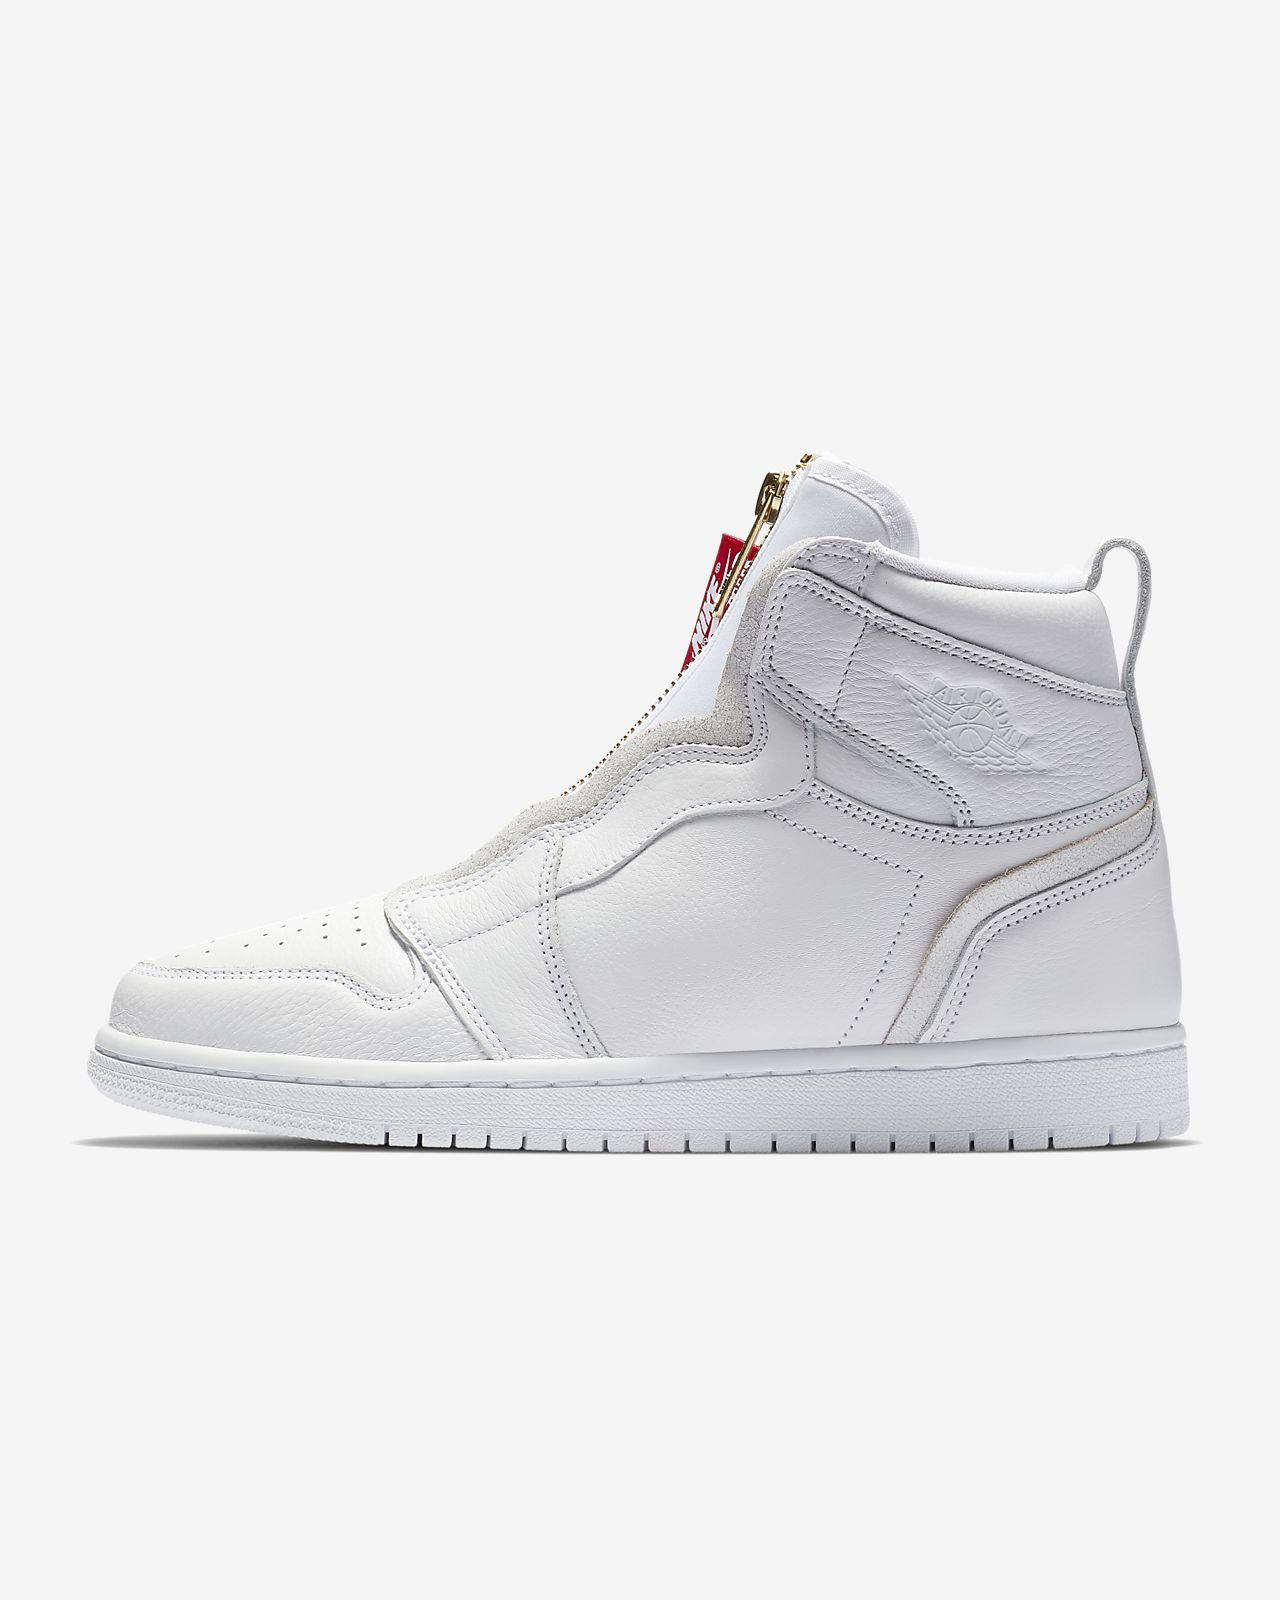 Nike Air Jordan 1 High Zip Women's Shoe Best Authentic New Styles Sale Online kqFmmAuz